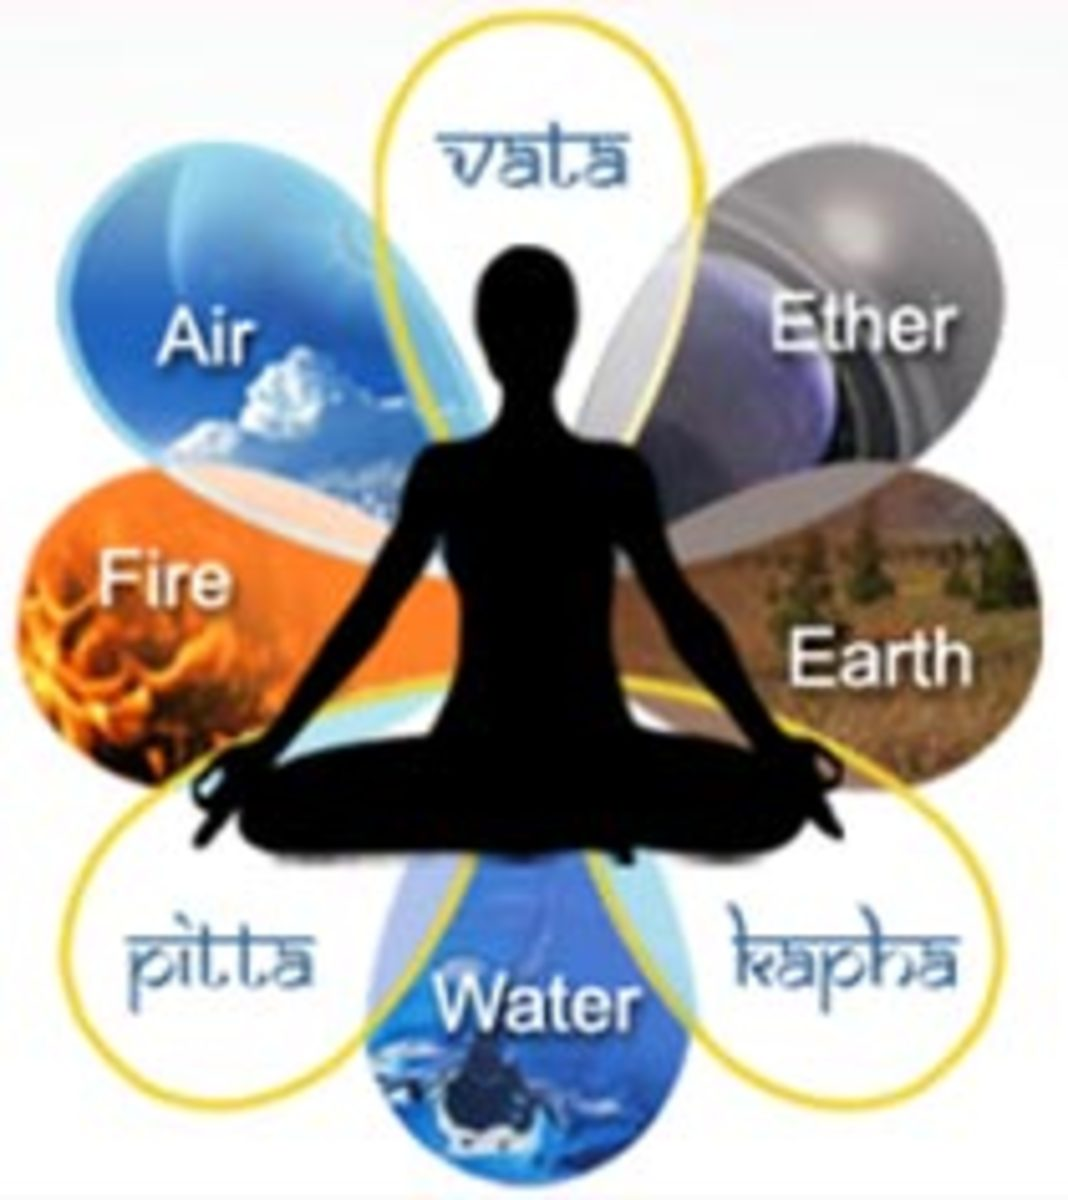 Ayurveda's Three Doshas: Vata, Pitta and Kapha